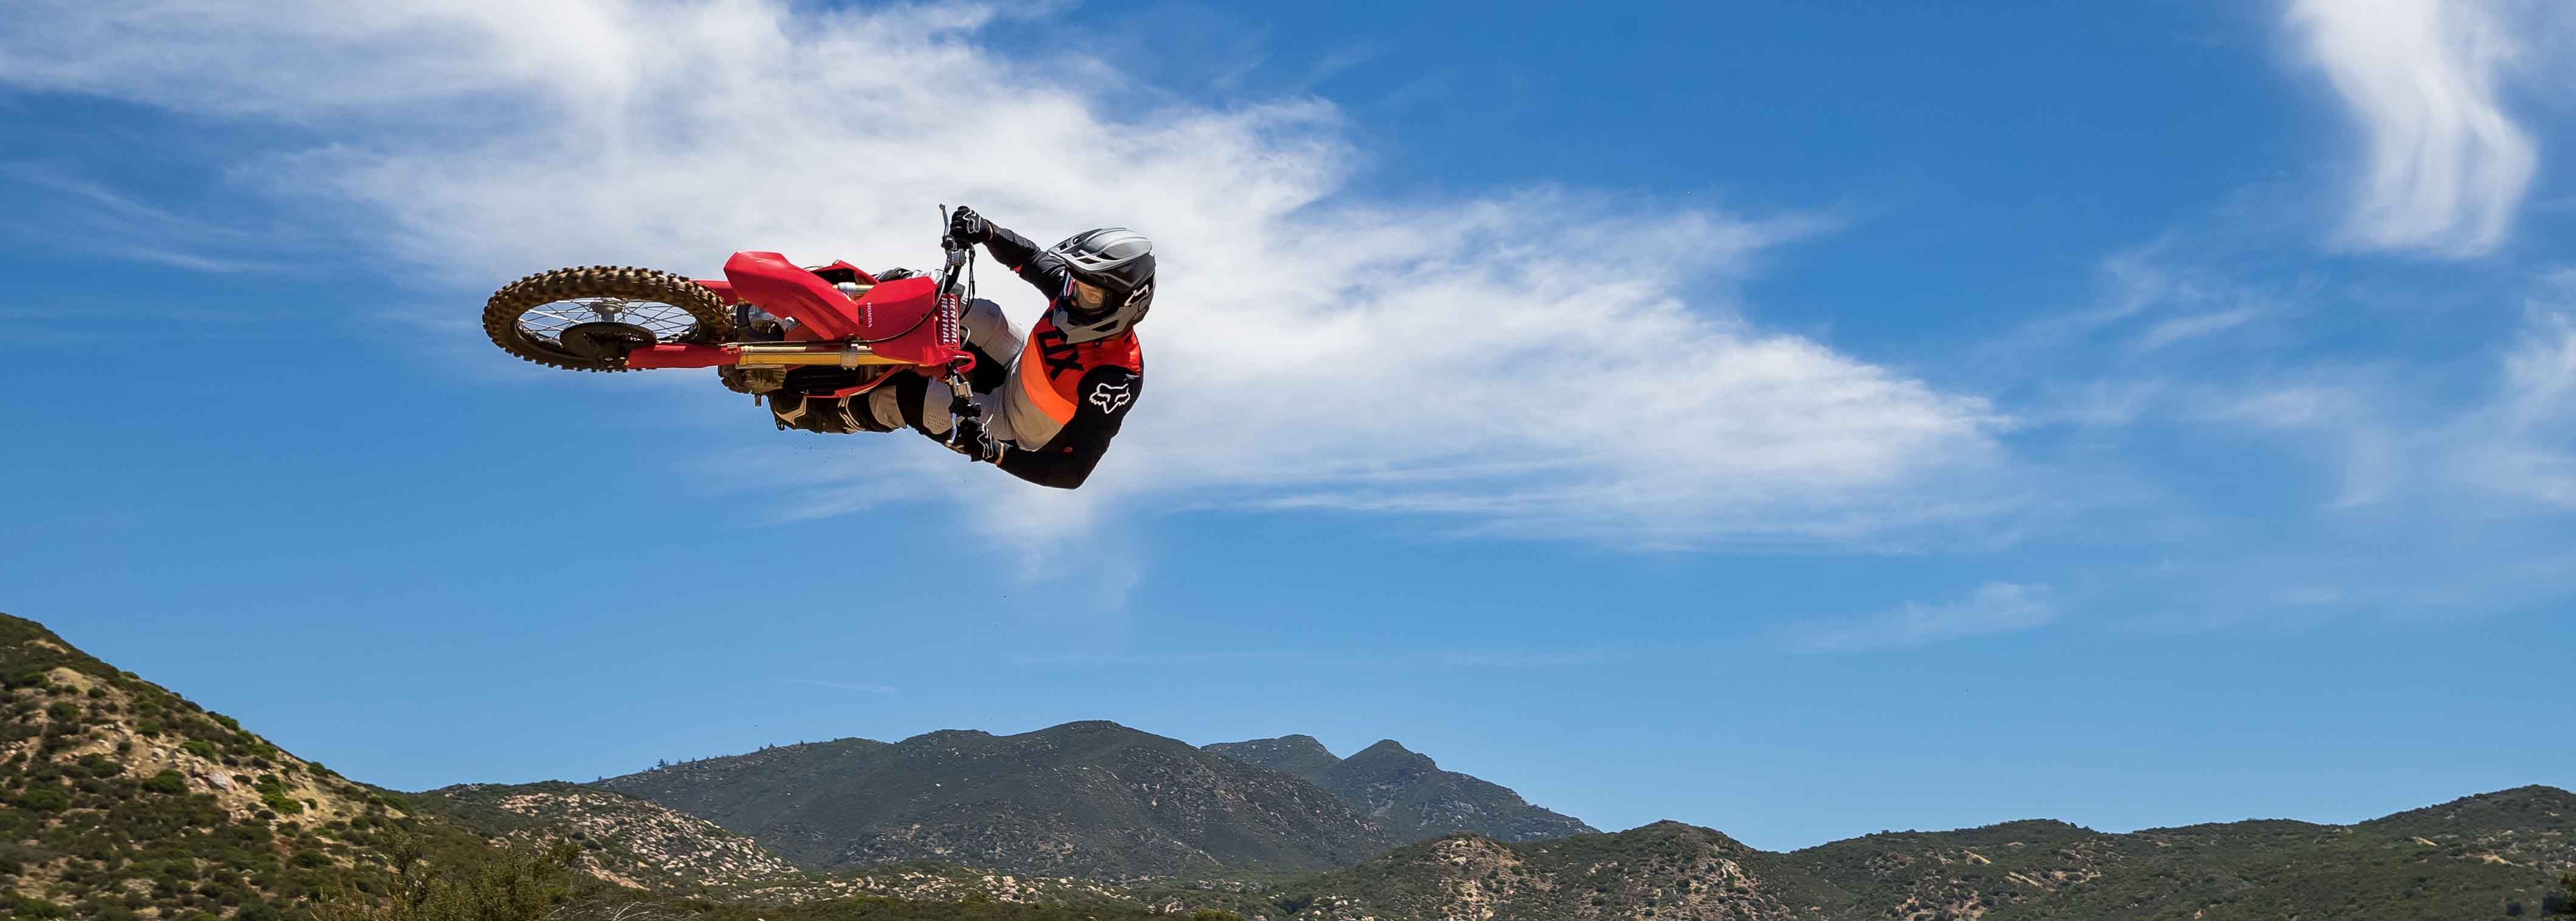 The Honda CRF450RX is the perfect cross country weapon video-banner